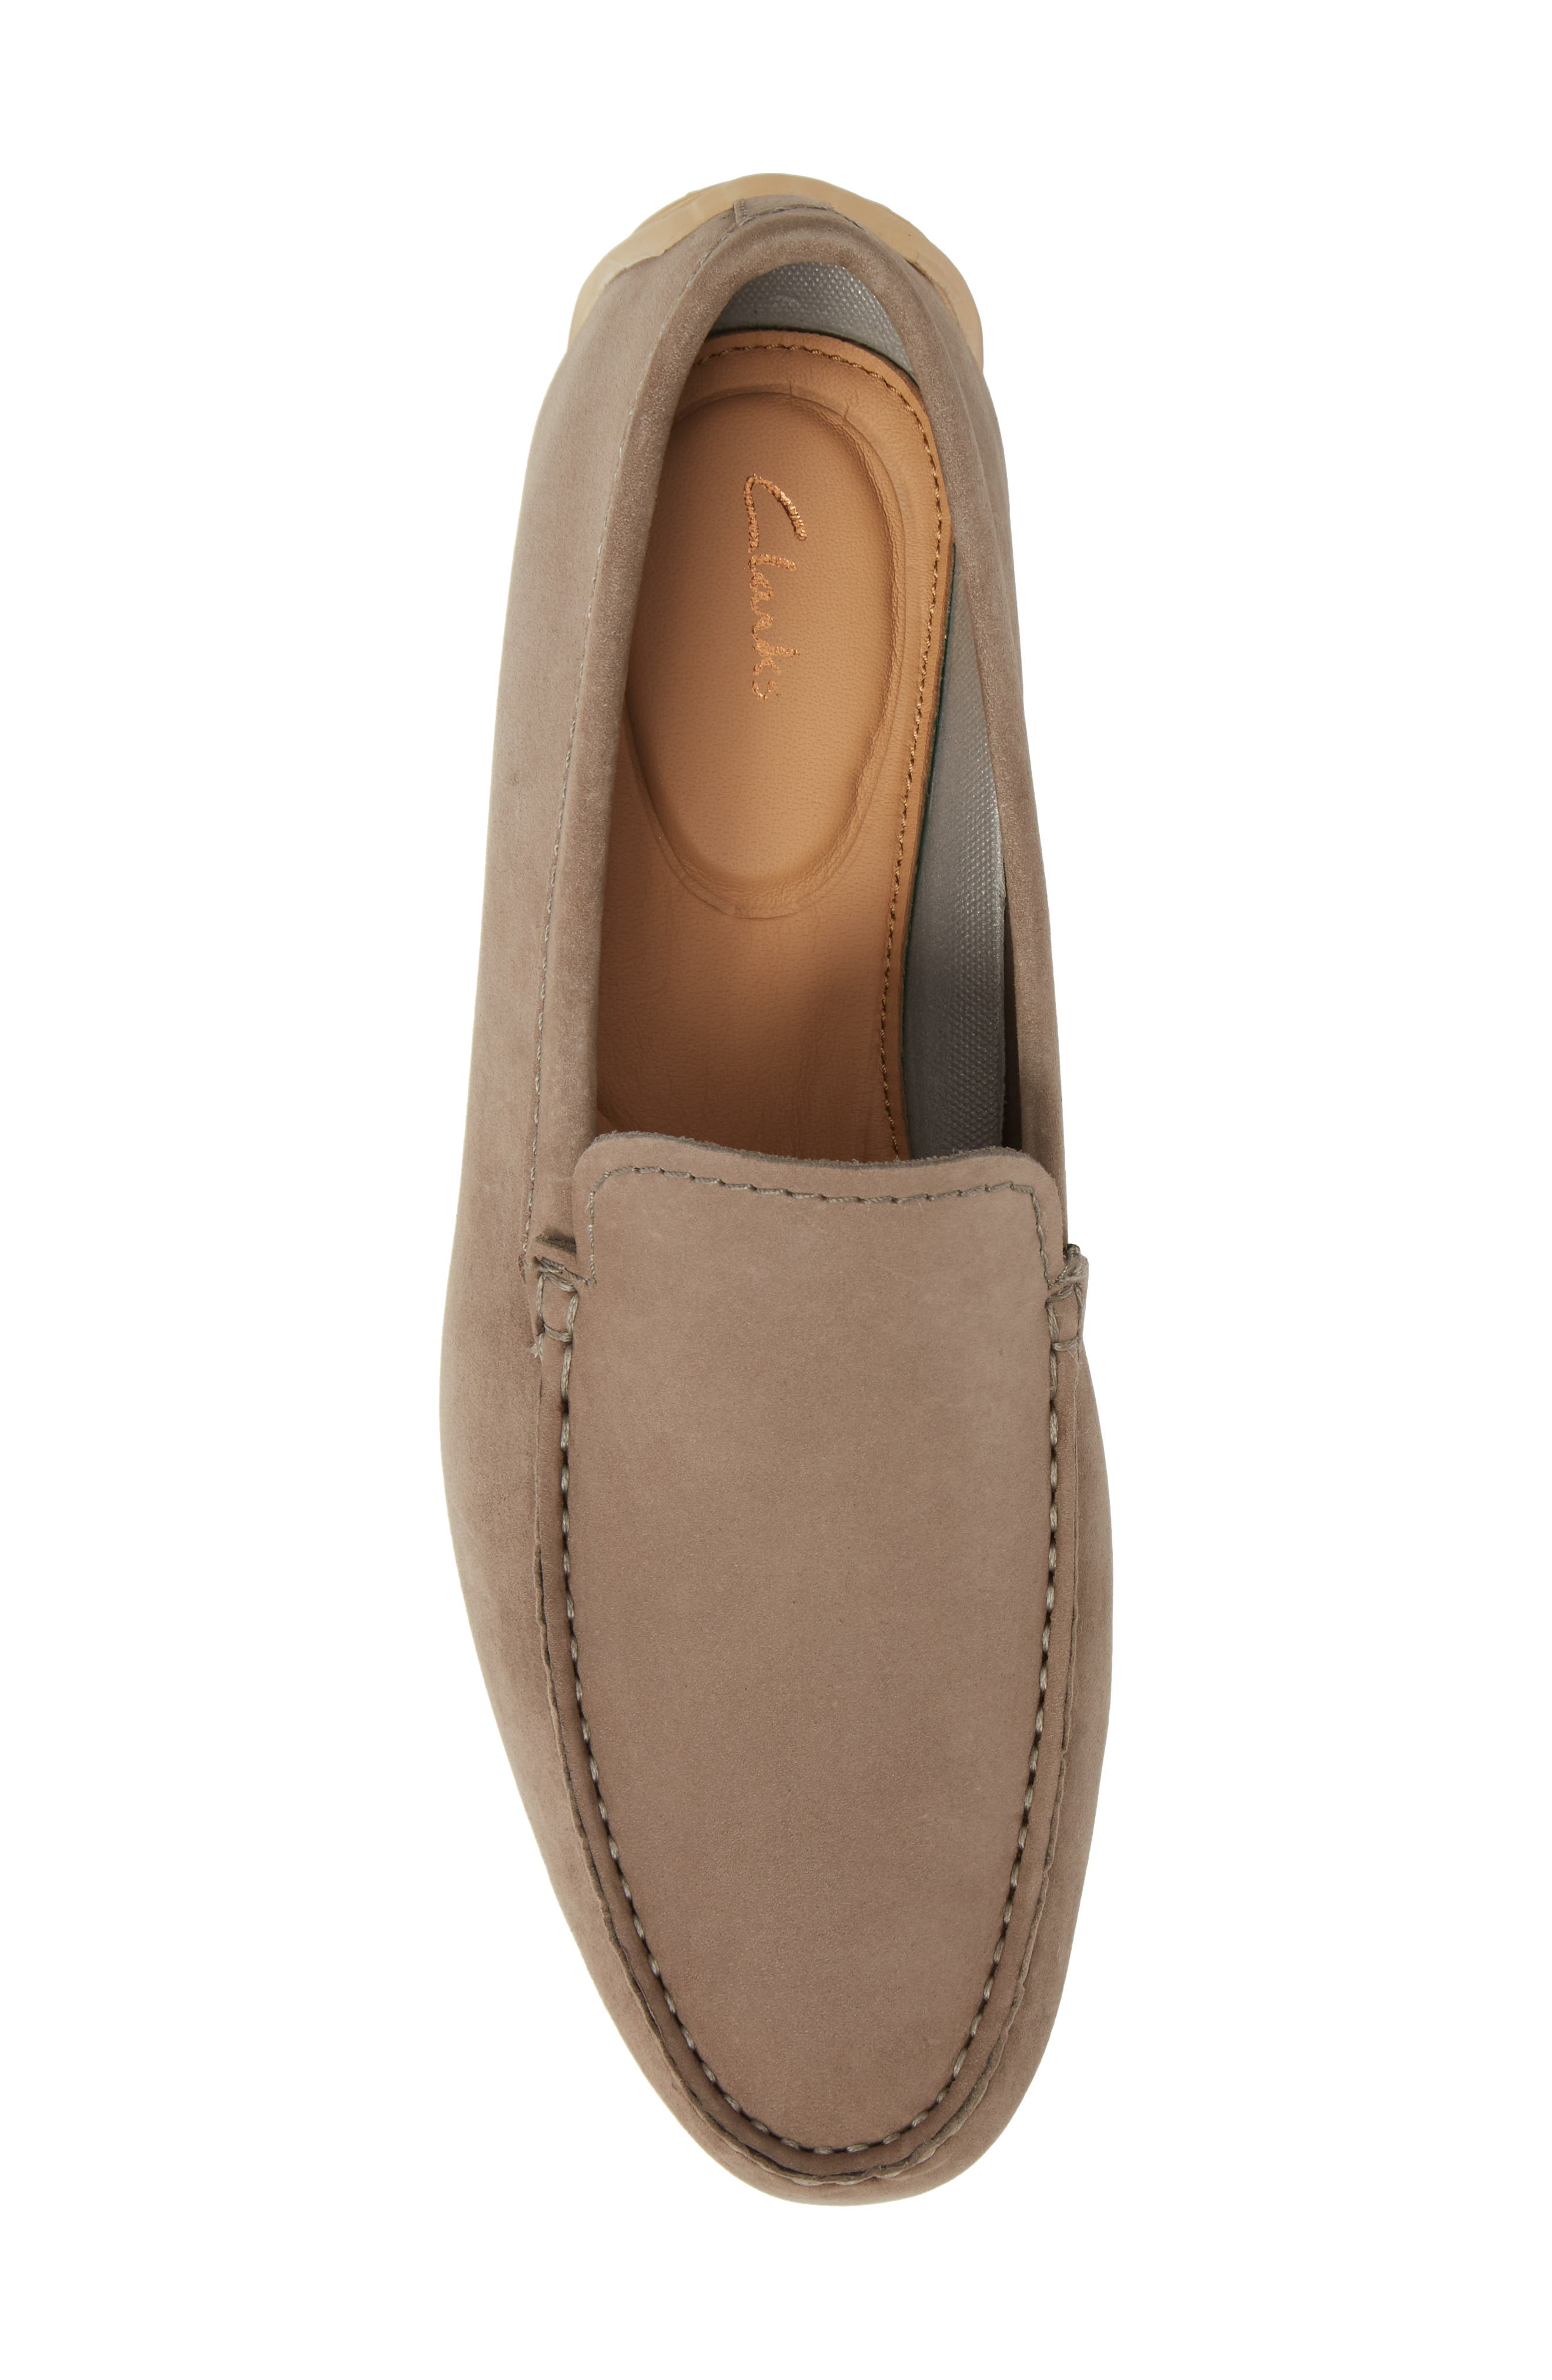 Clarks<sup>®</sup> Reazor Edge Driving Moccasin,                             Alternate thumbnail 5, color,                             SAGE NUBUCK